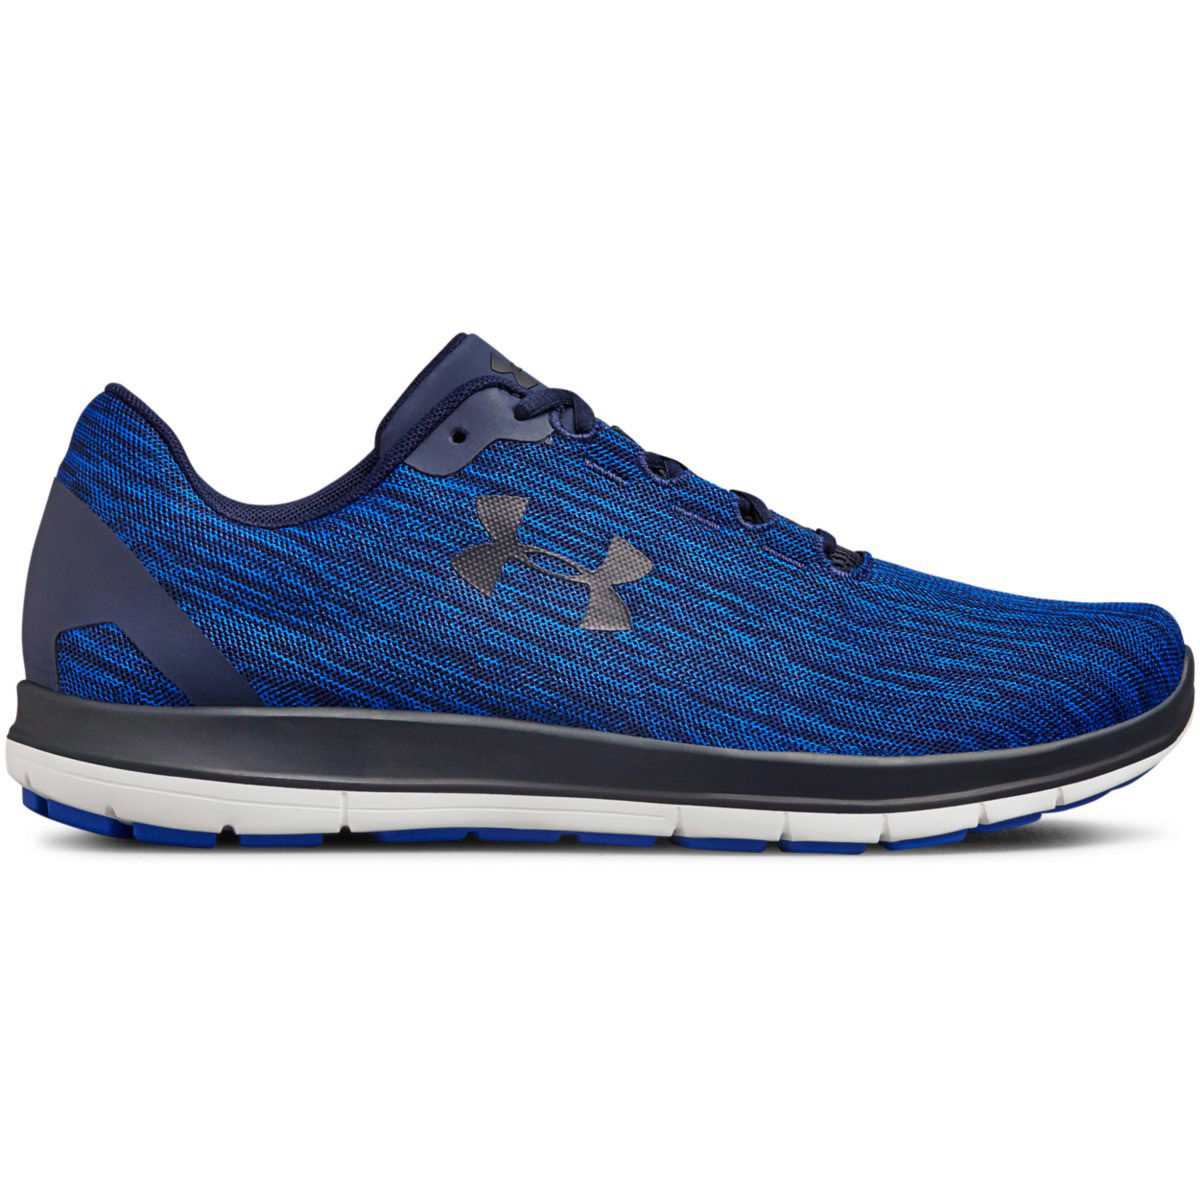 Under Armour Remix Mens Running Shoe